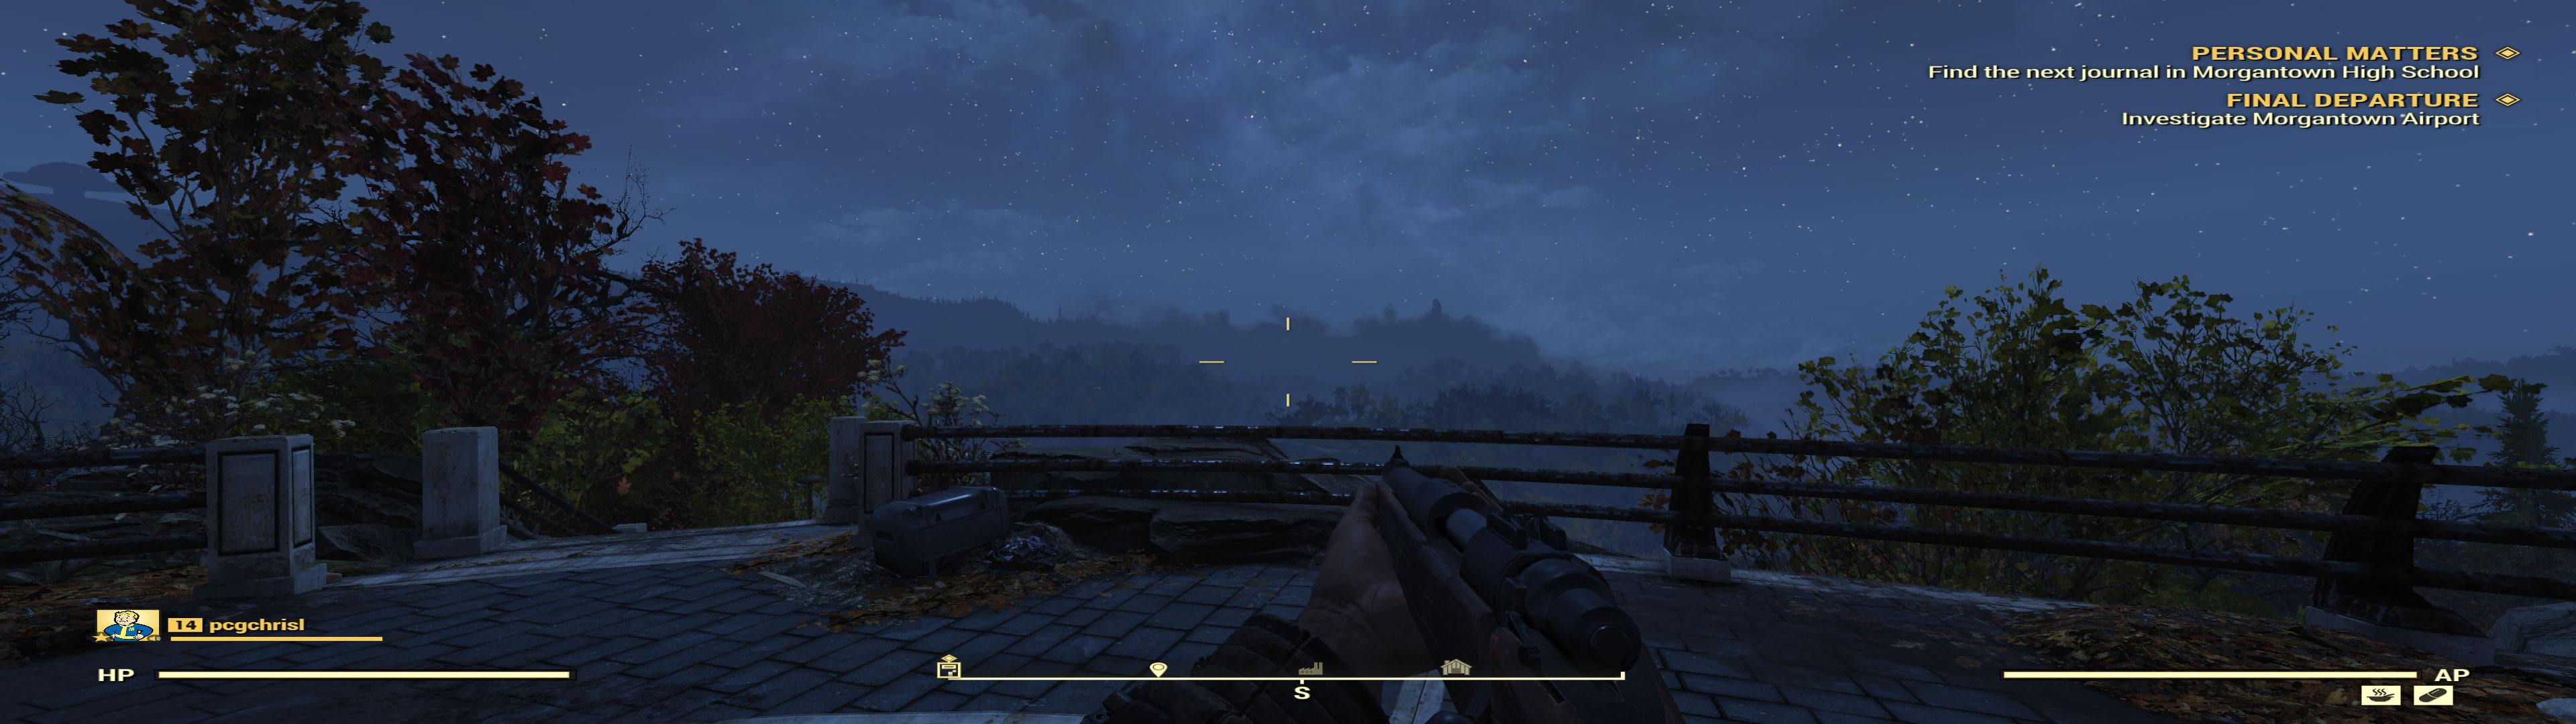 The 1 14 Fallout 76 patch allows unlocked fps and fixes speed hacks